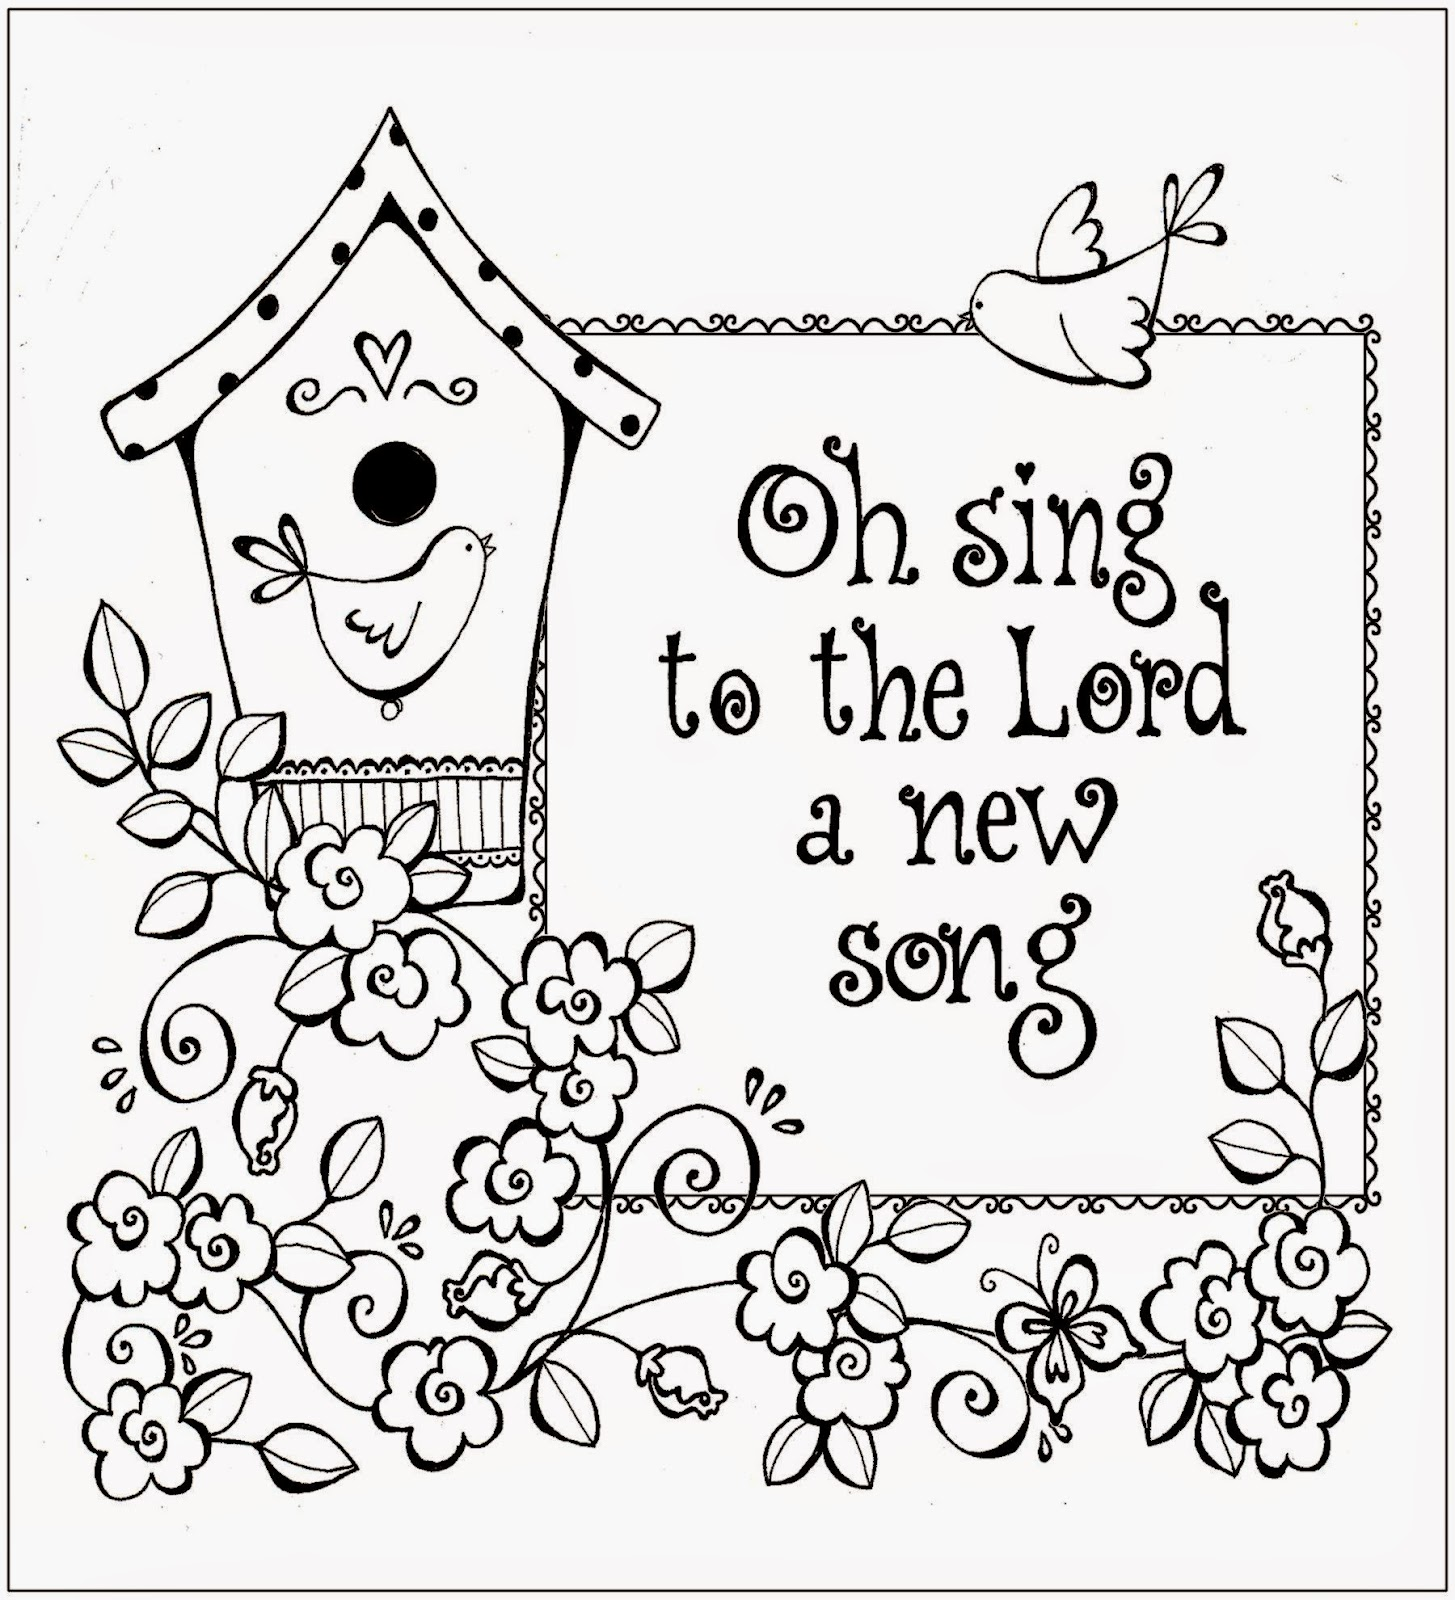 Bible Story Coloring Pages Free Trendy Easy To Make Boy To Sunday